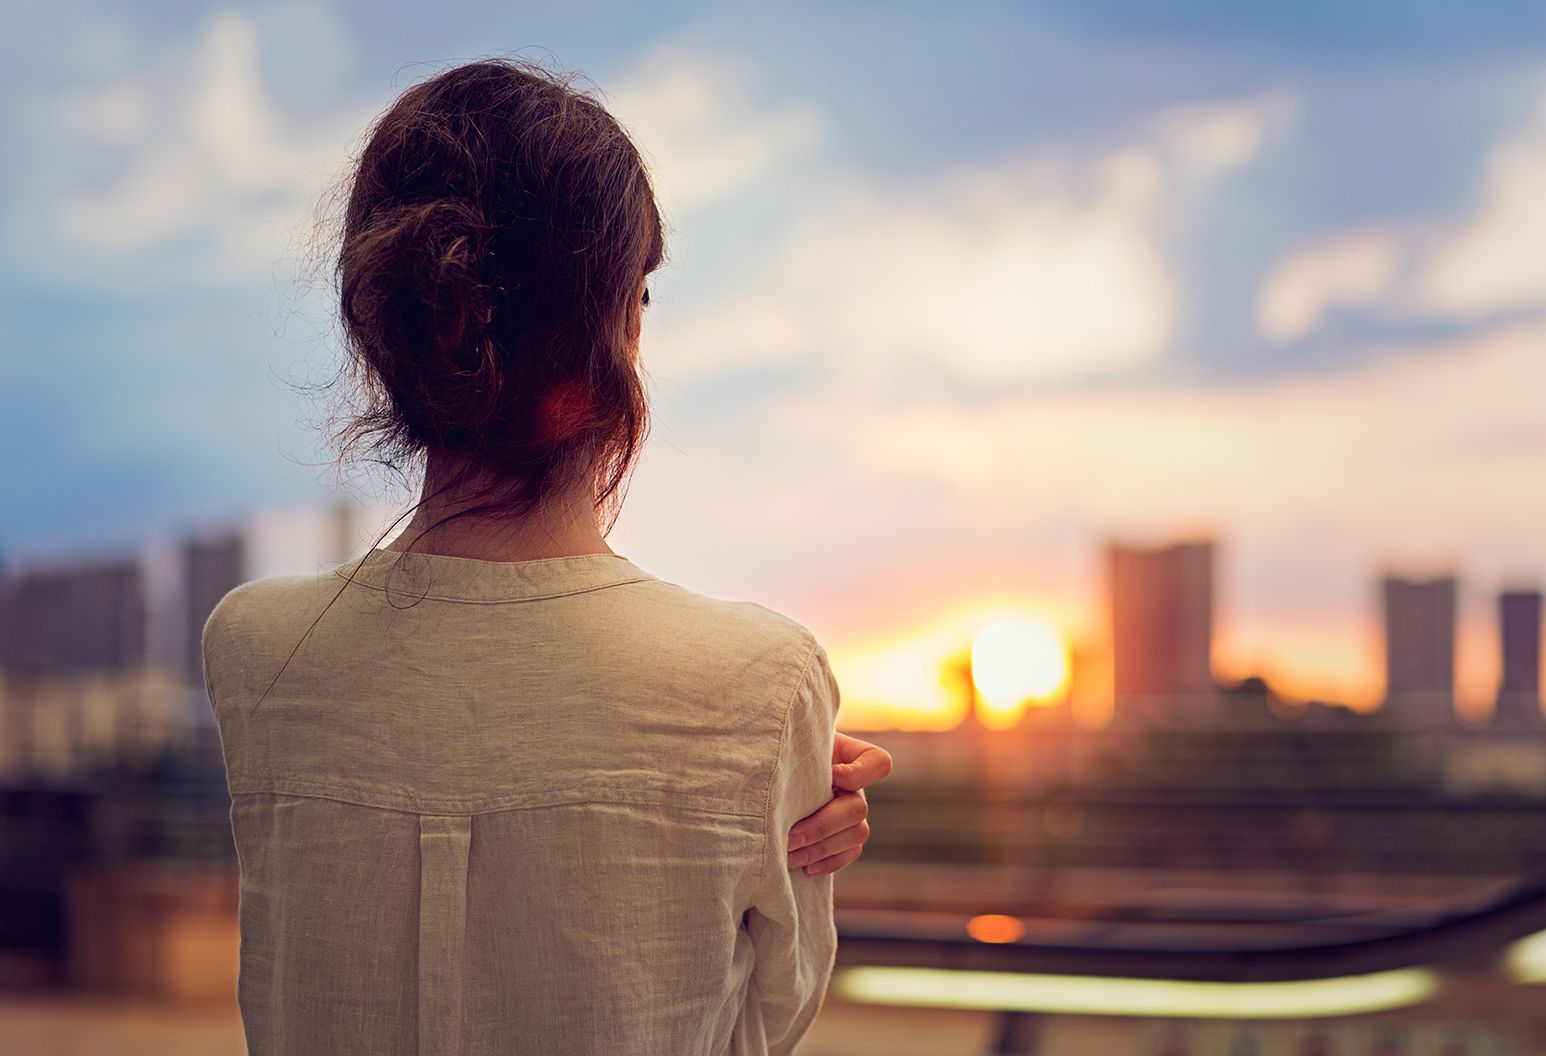 This is an image of a woman with her back to the camera, hair in a messy bun, with her arms crossed in front of her chest, looking off into the distance at a sunset.